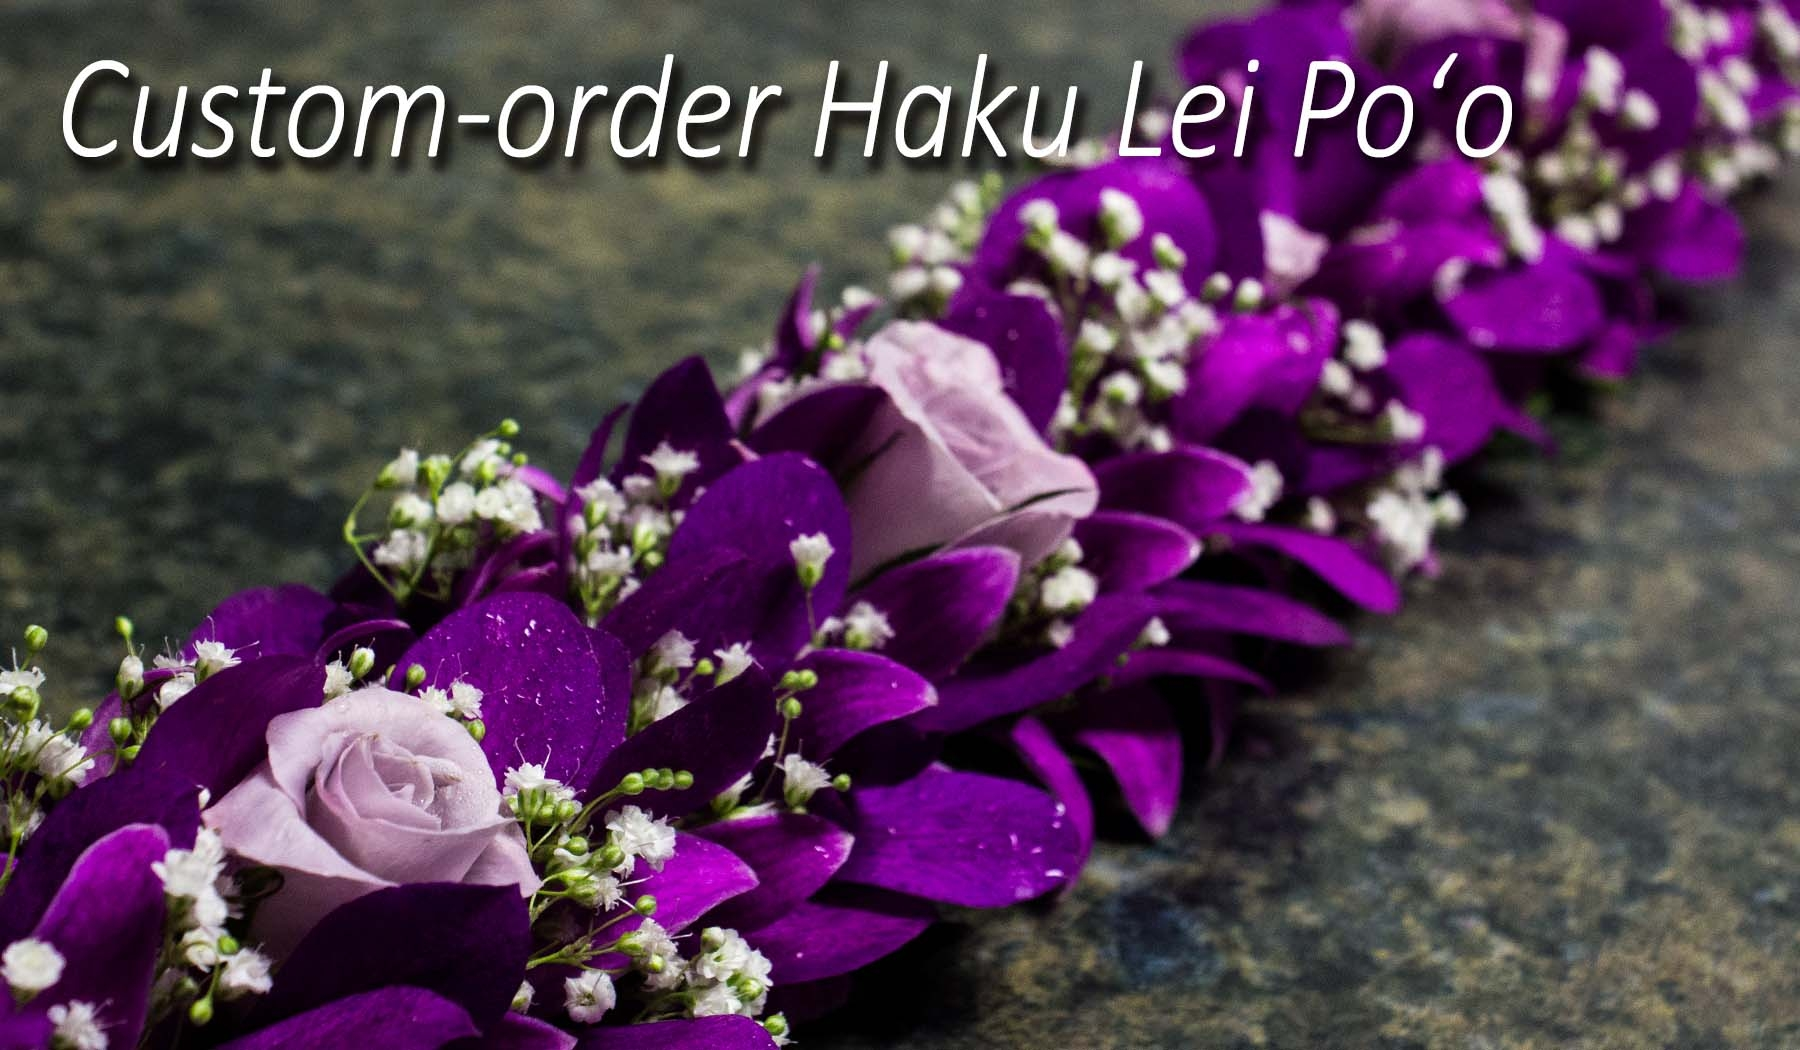 Lins lei stand fresh leis from hilo hawaii lins lei stand fresh flower leis from hilo hawaii izmirmasajfo Image collections